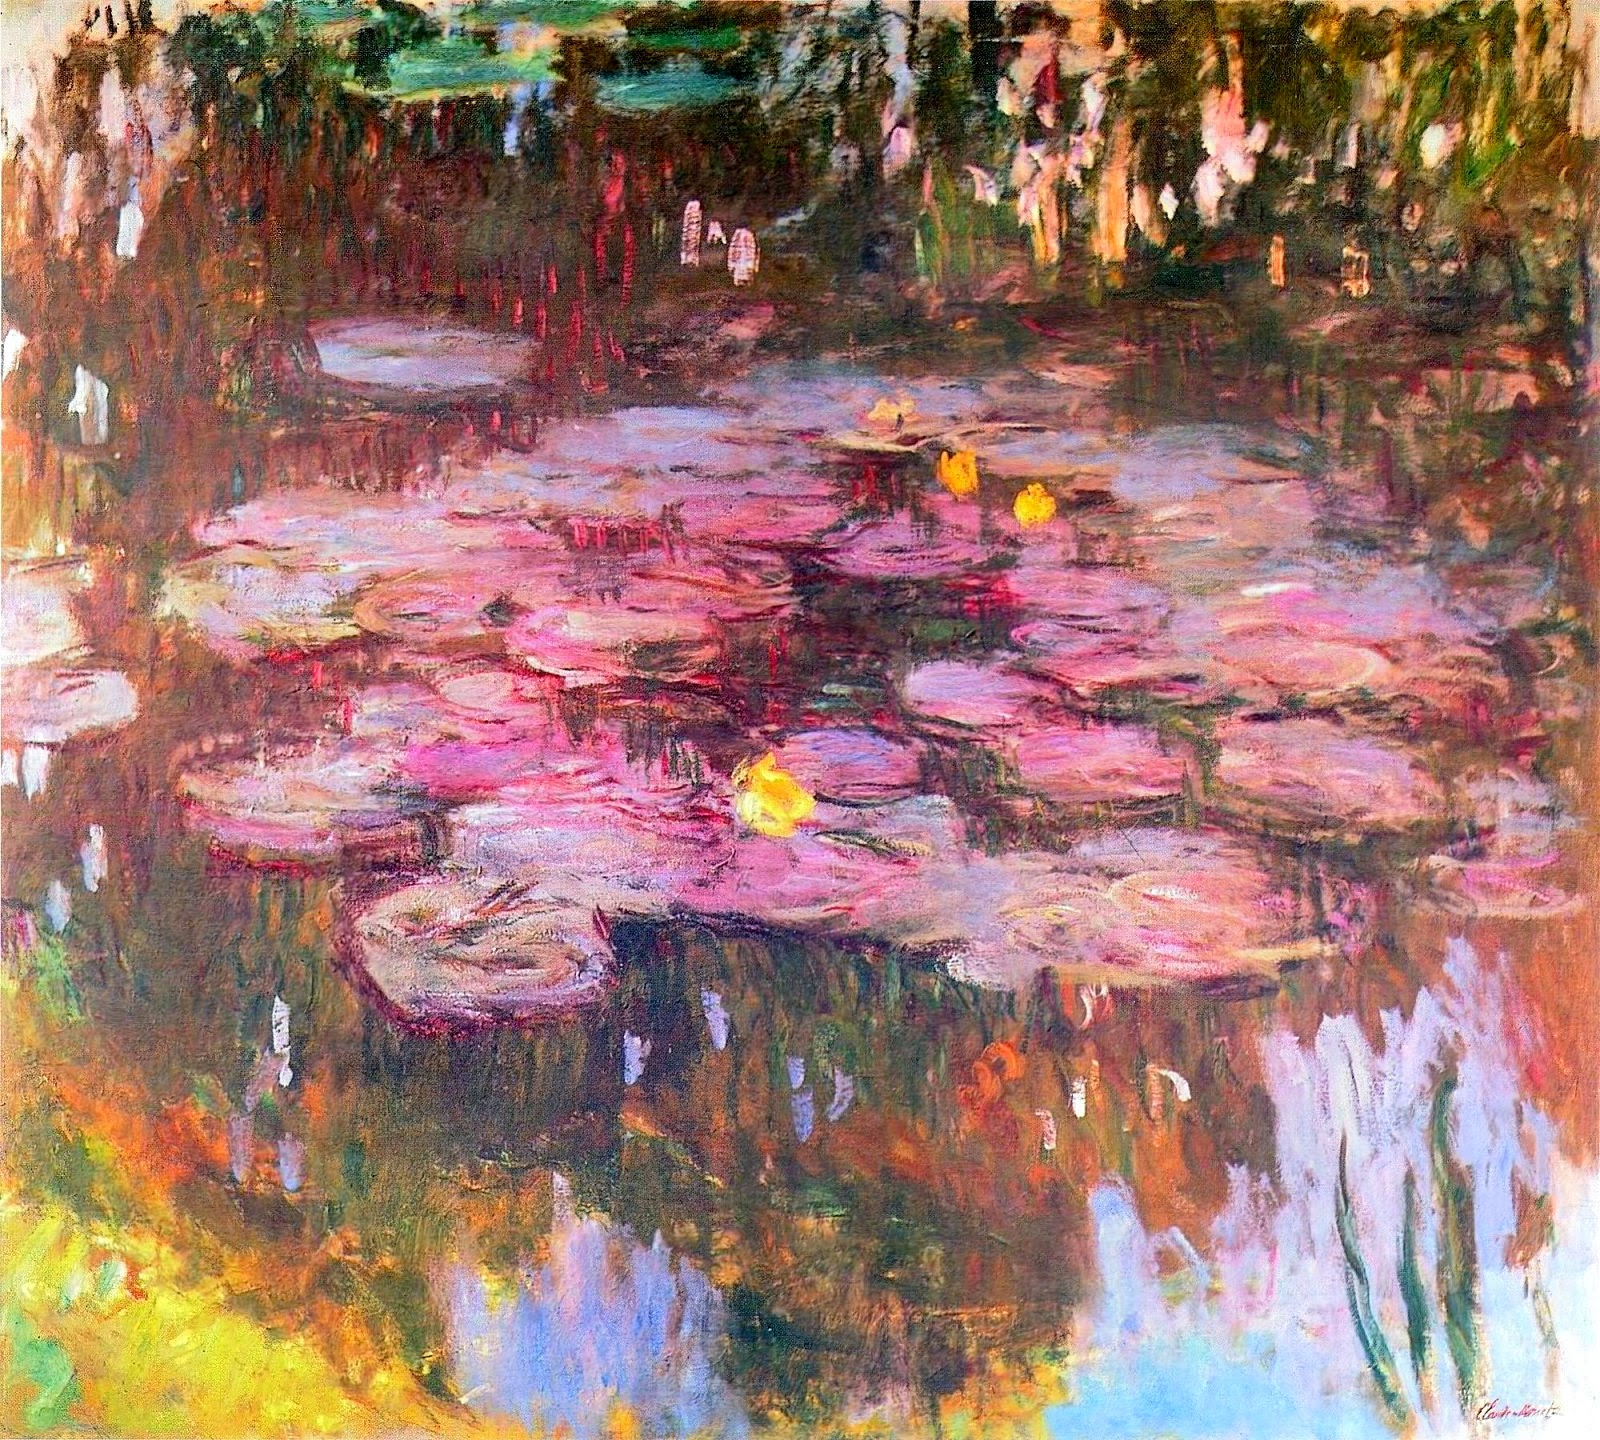 the life and works of claude monet You may have heard of the impressionist art movement, but how much do you know about one of its most well-regarded artists, claude monet read on to find out more.